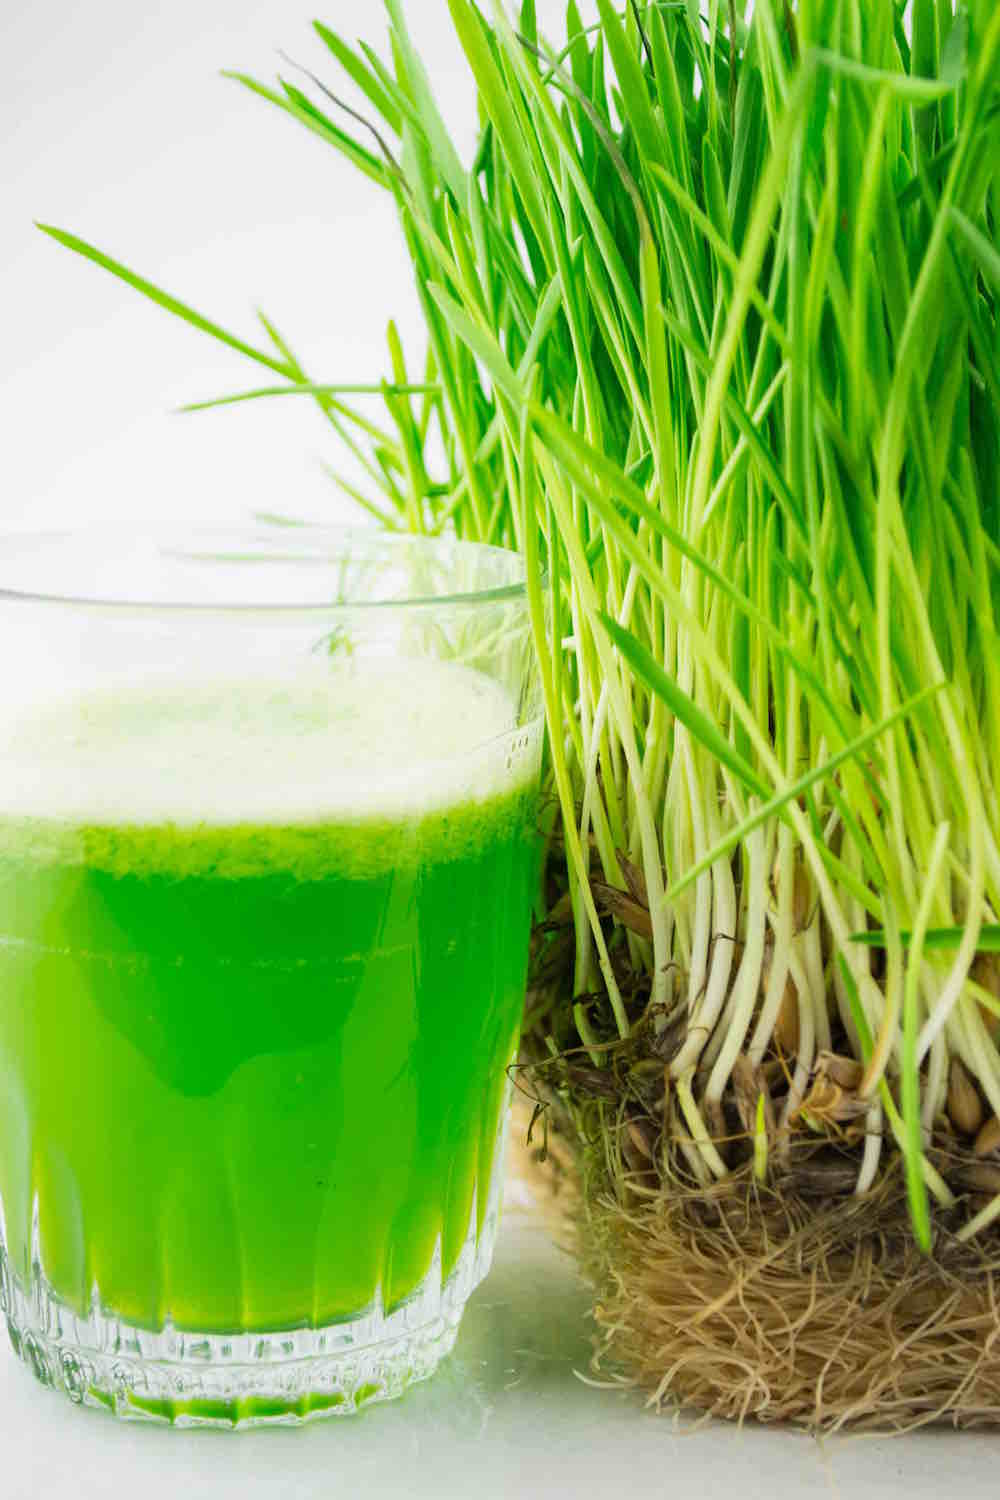 fresh wheatgrass juice and plant